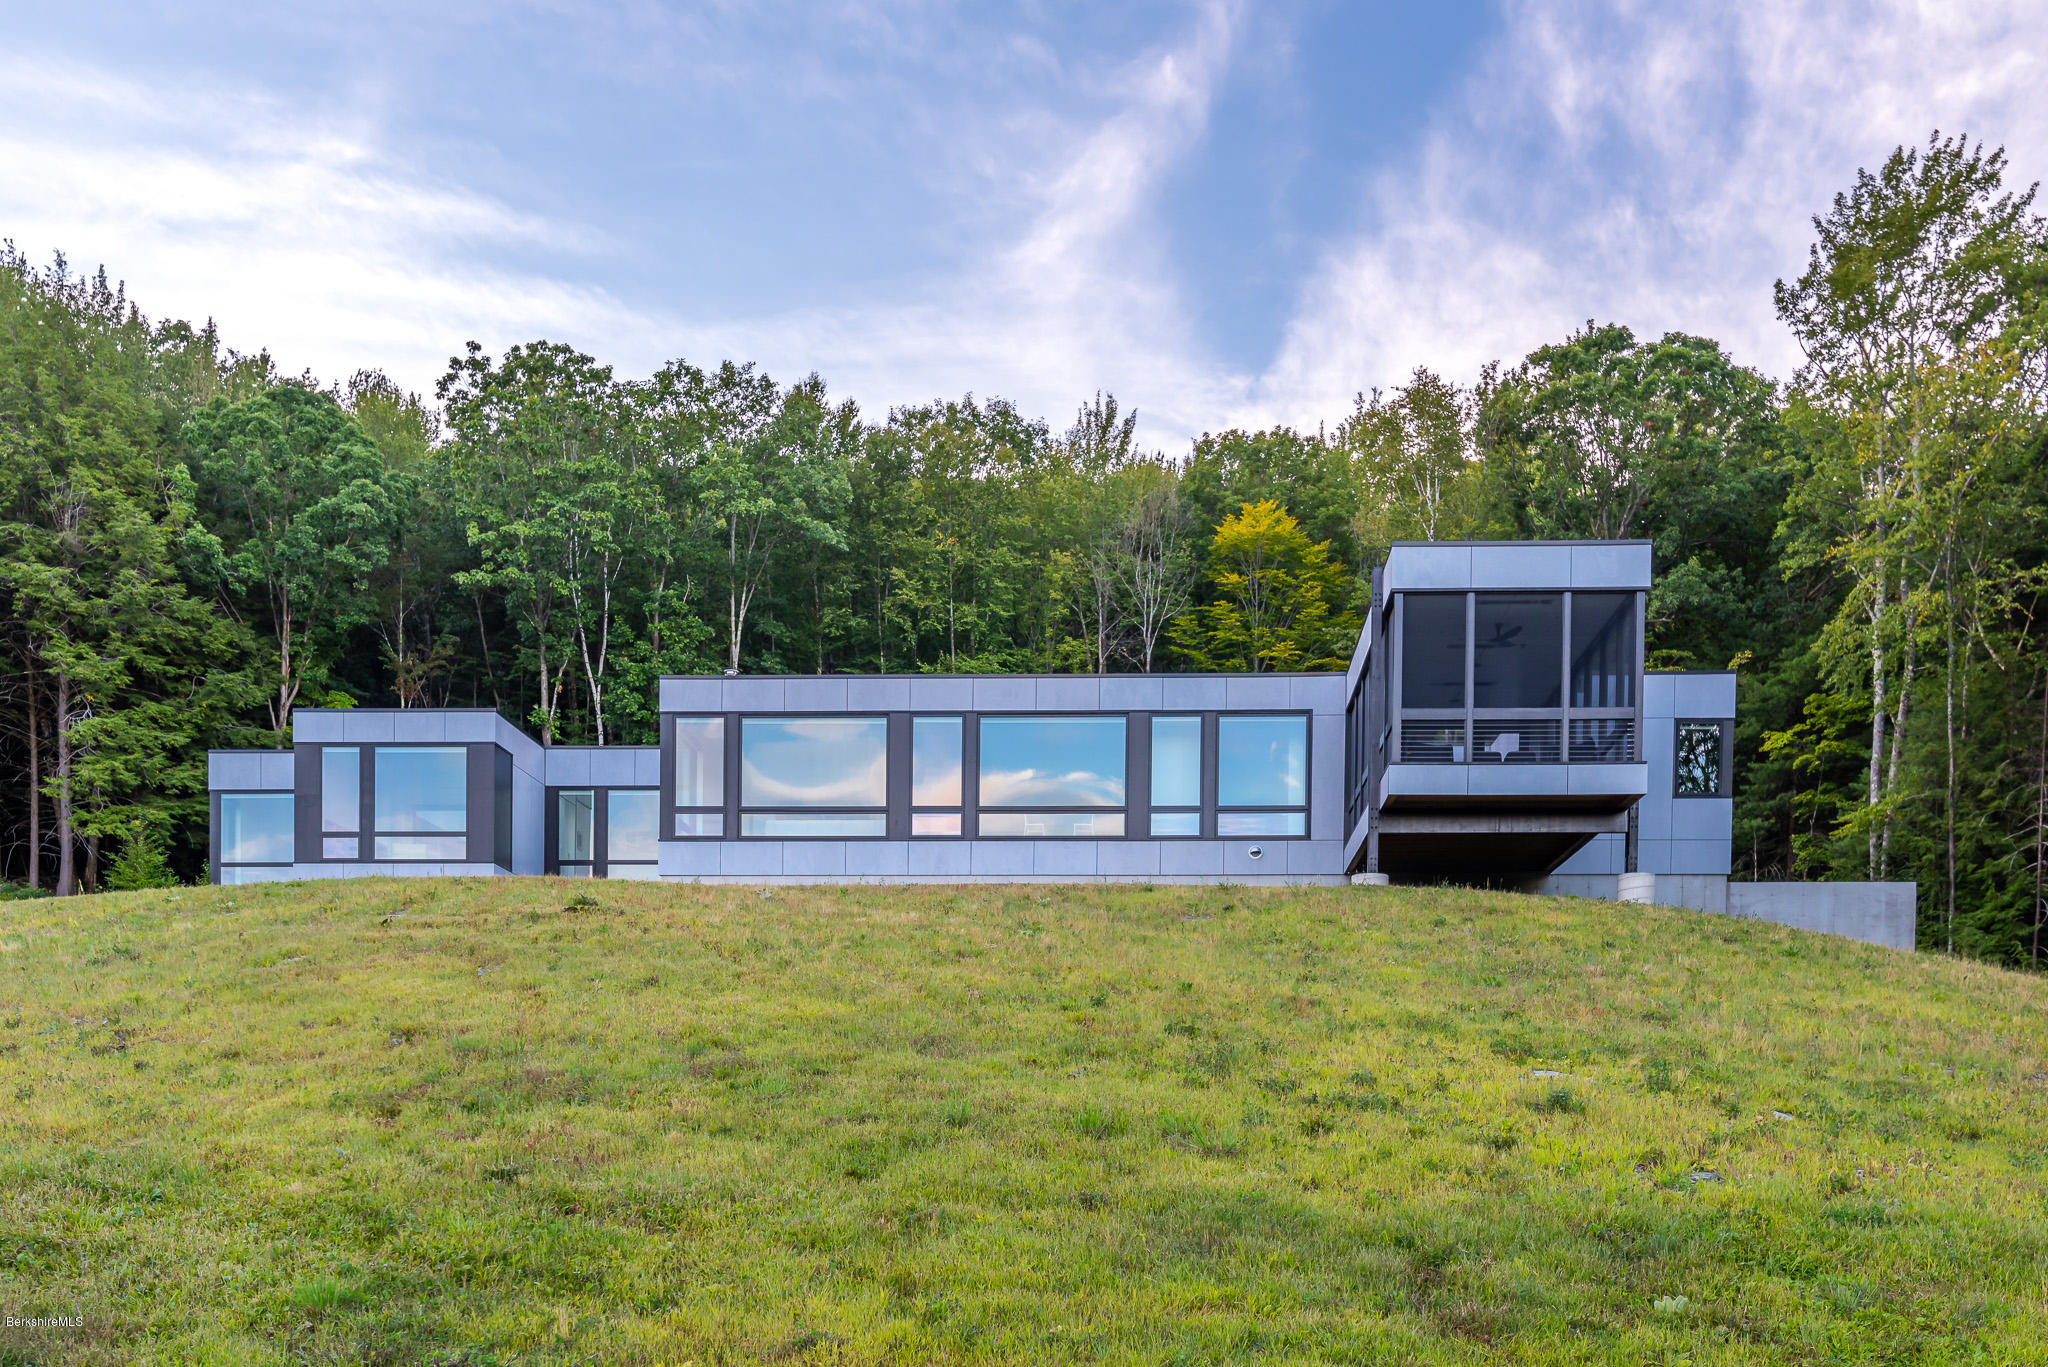 Property located at 42 Alford Rd West Stockbridge MA 01266 photo